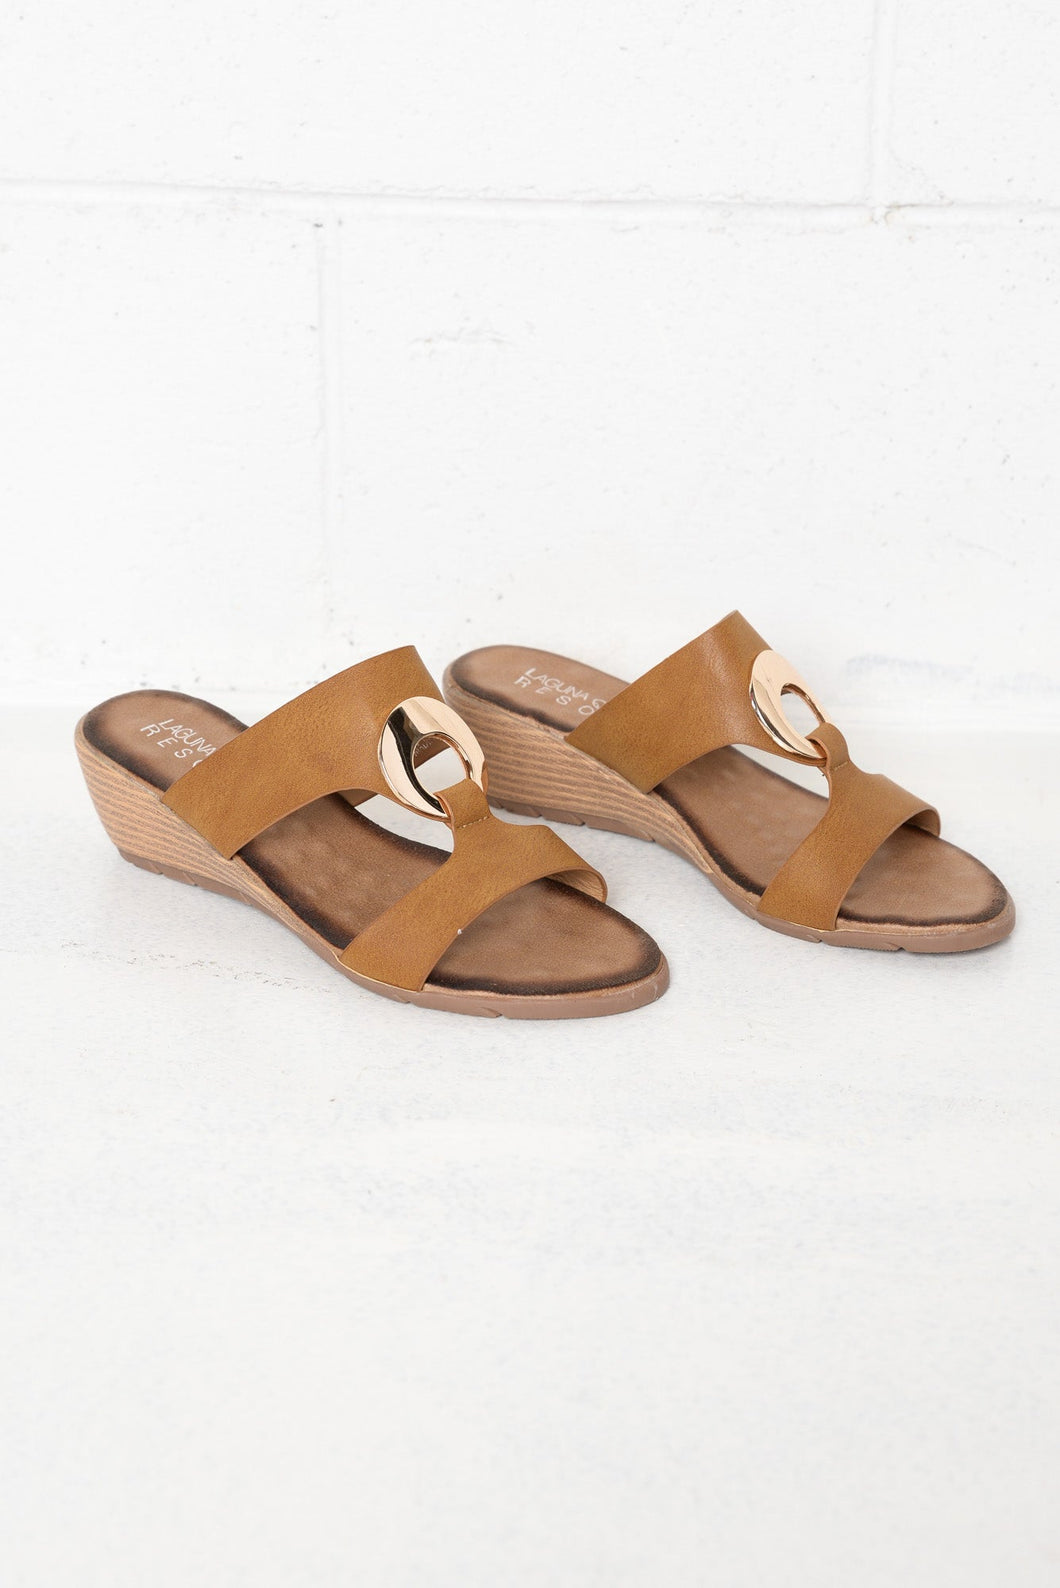 Nicole Tan Wedge Mule Sandal